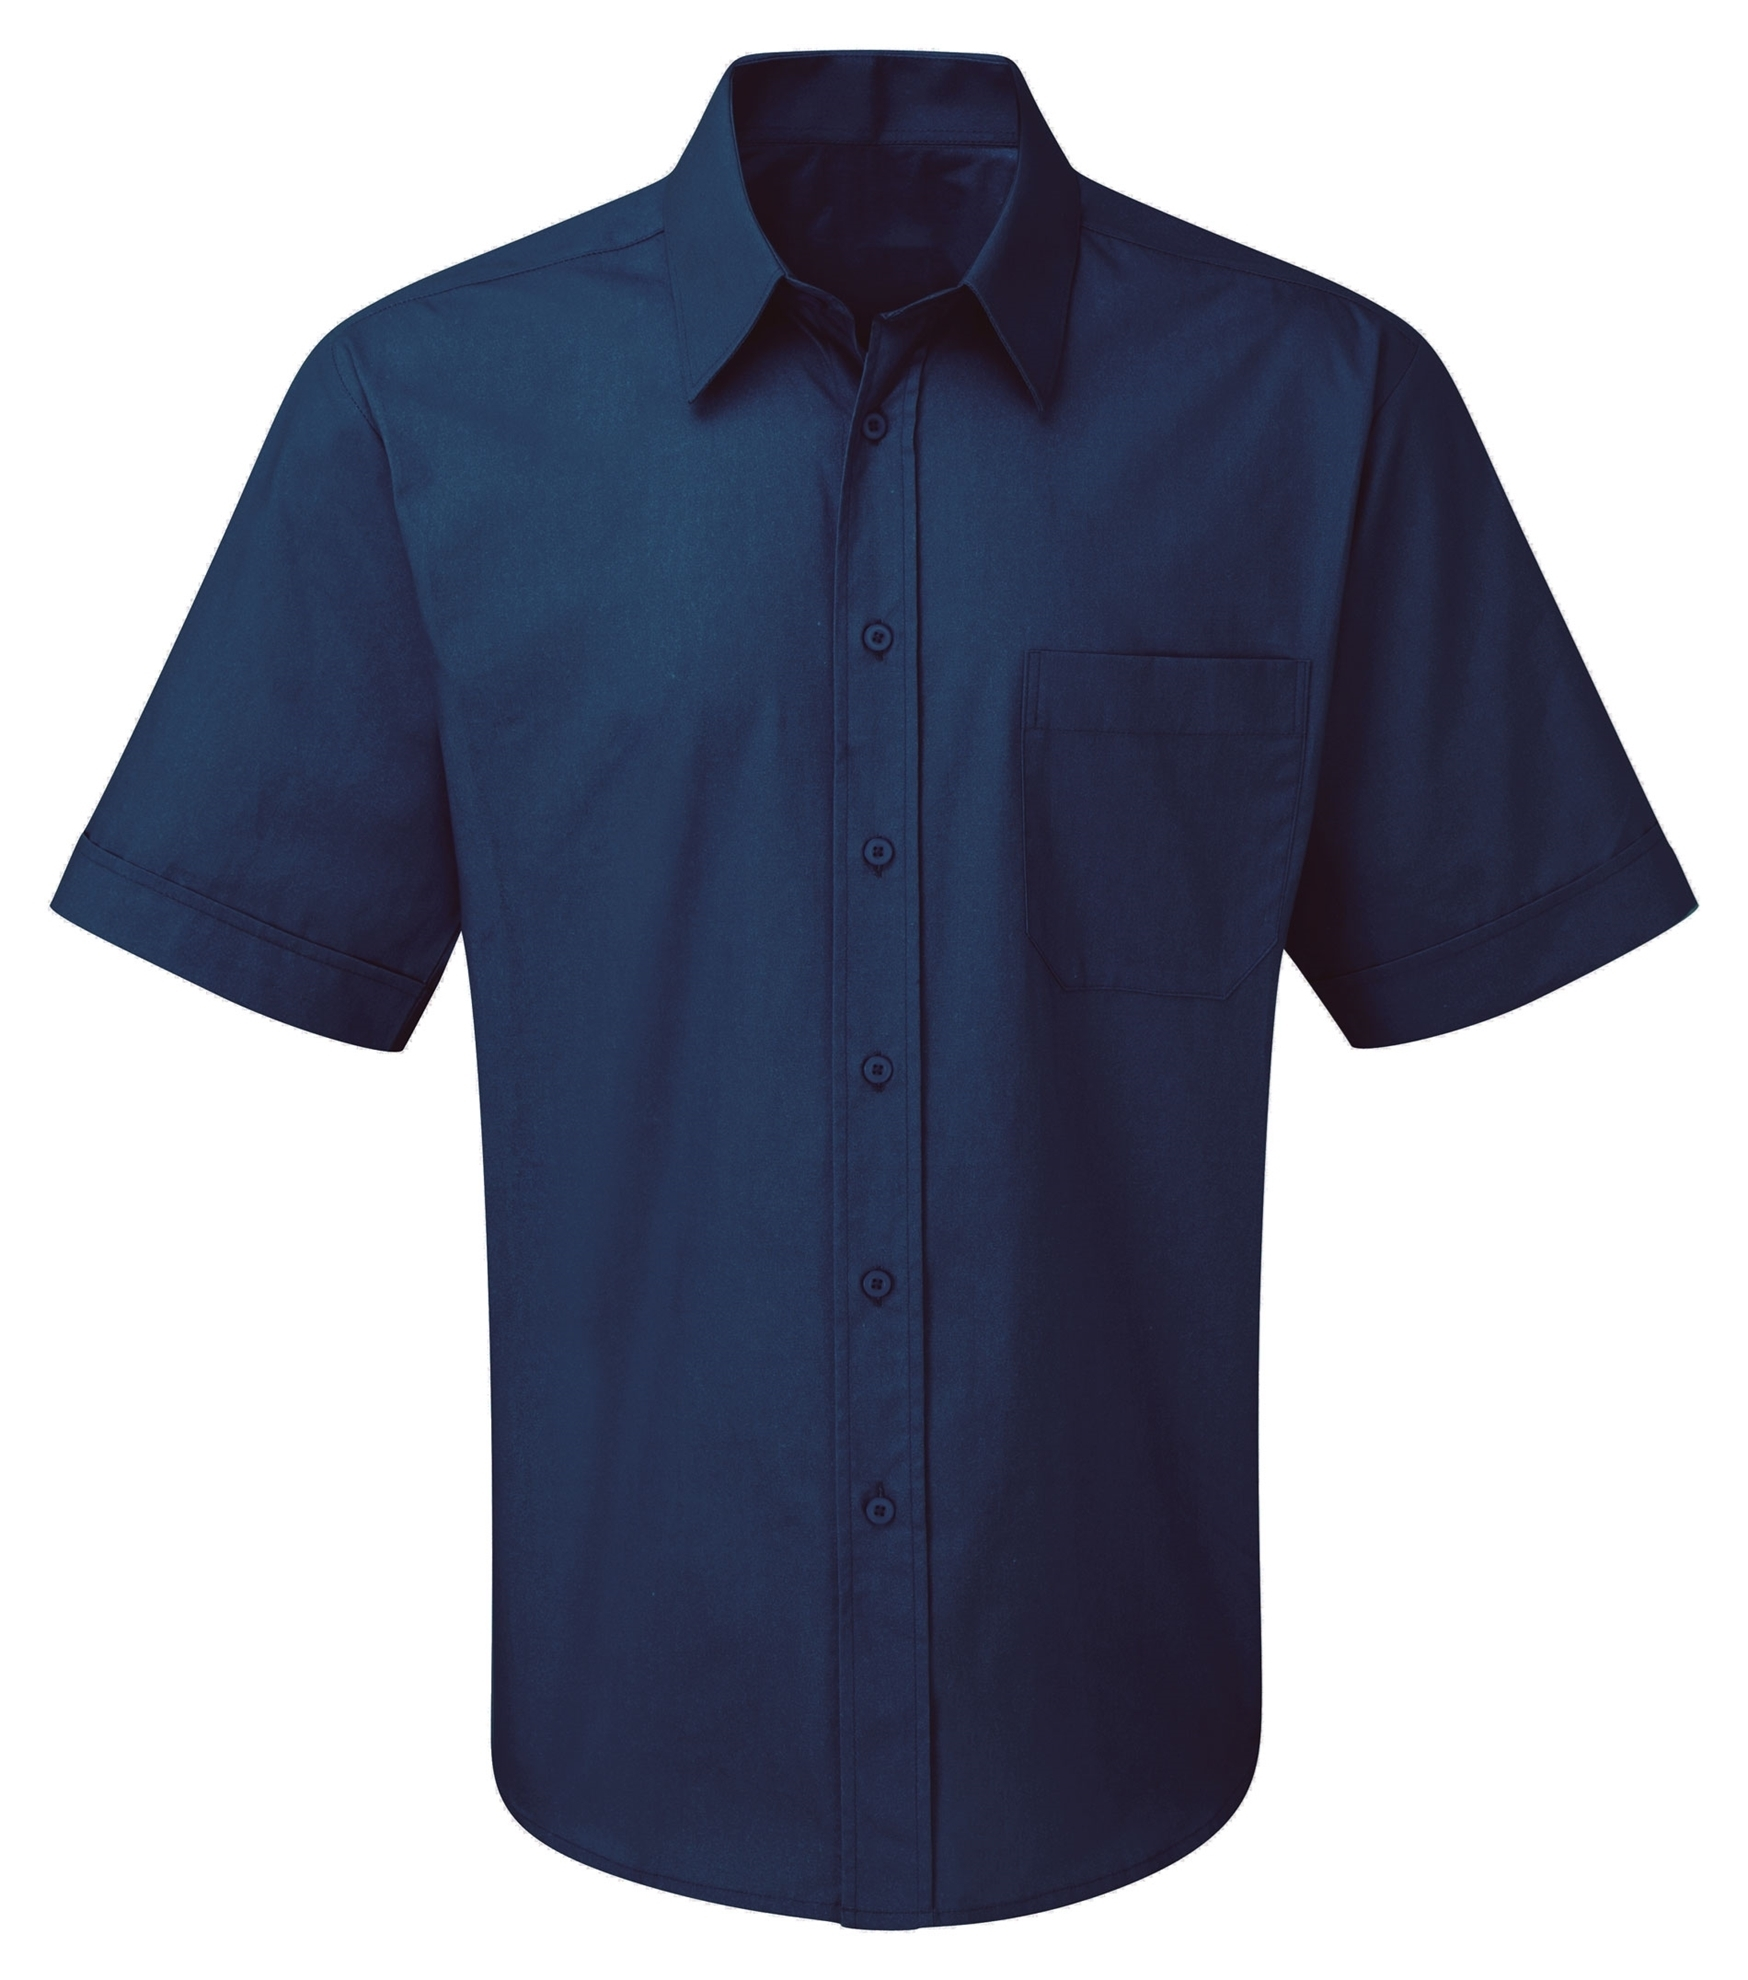 Picture of Male Short Sleeve Shirt - Plain Navy